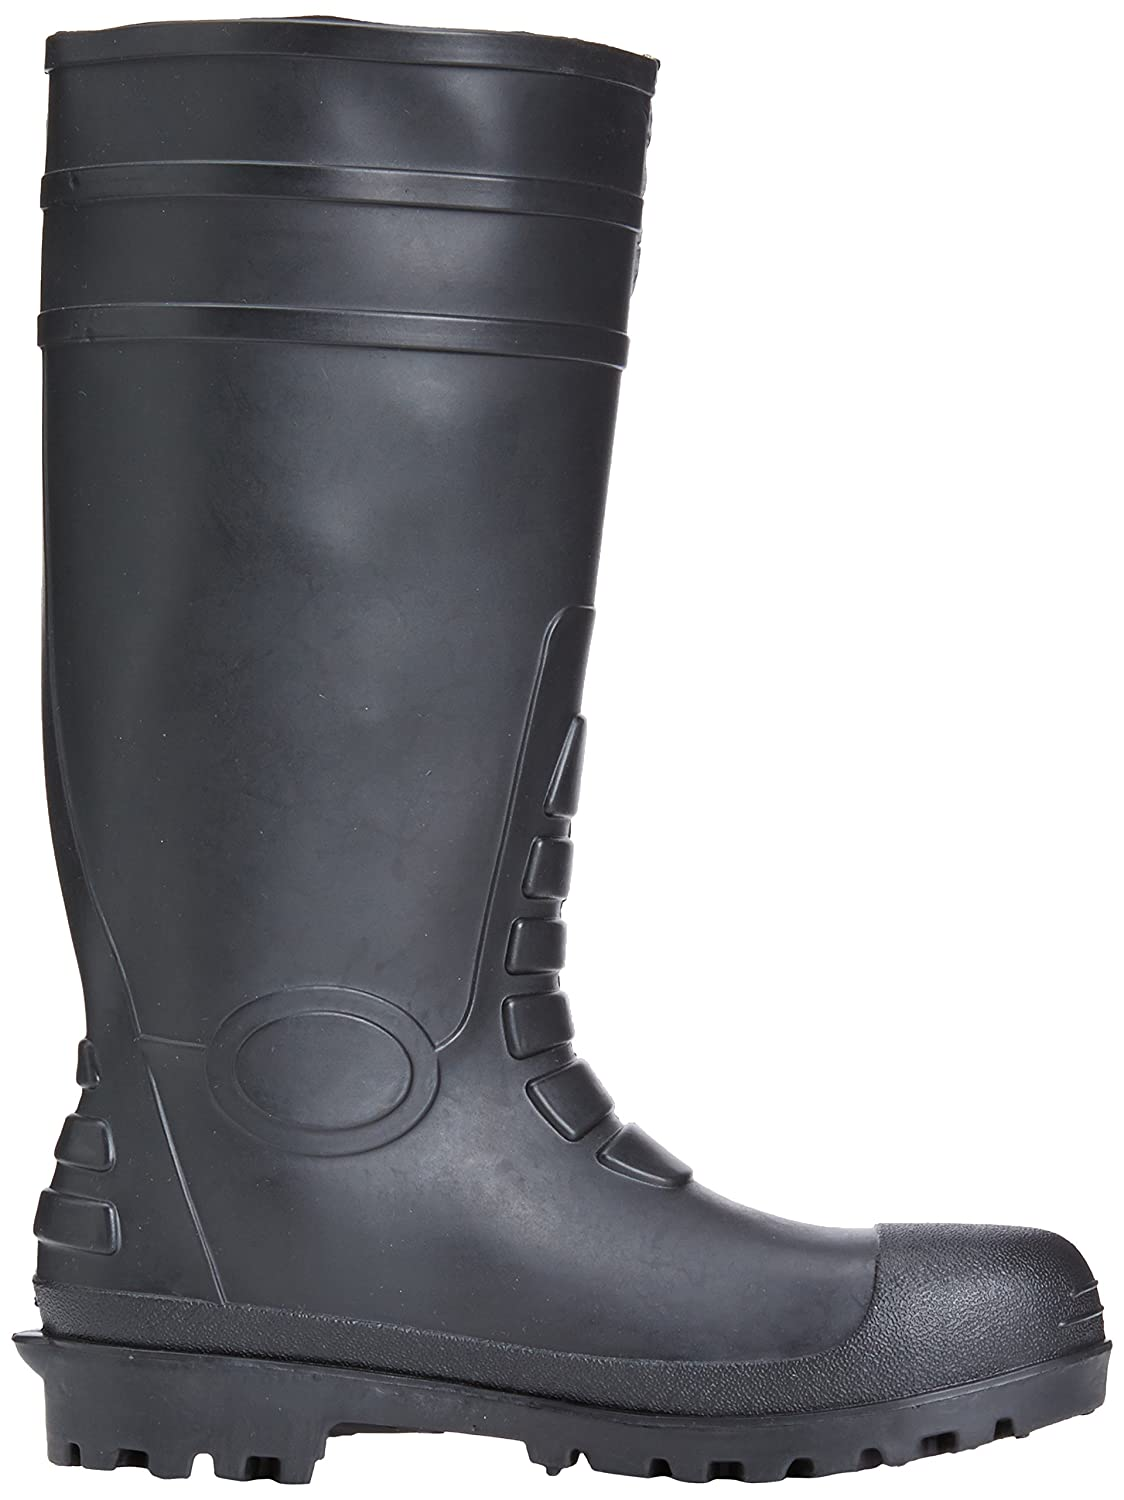 Negro 11 UK Calzado de protecci/ón Steelite Steelite Total Safety Wellington S5